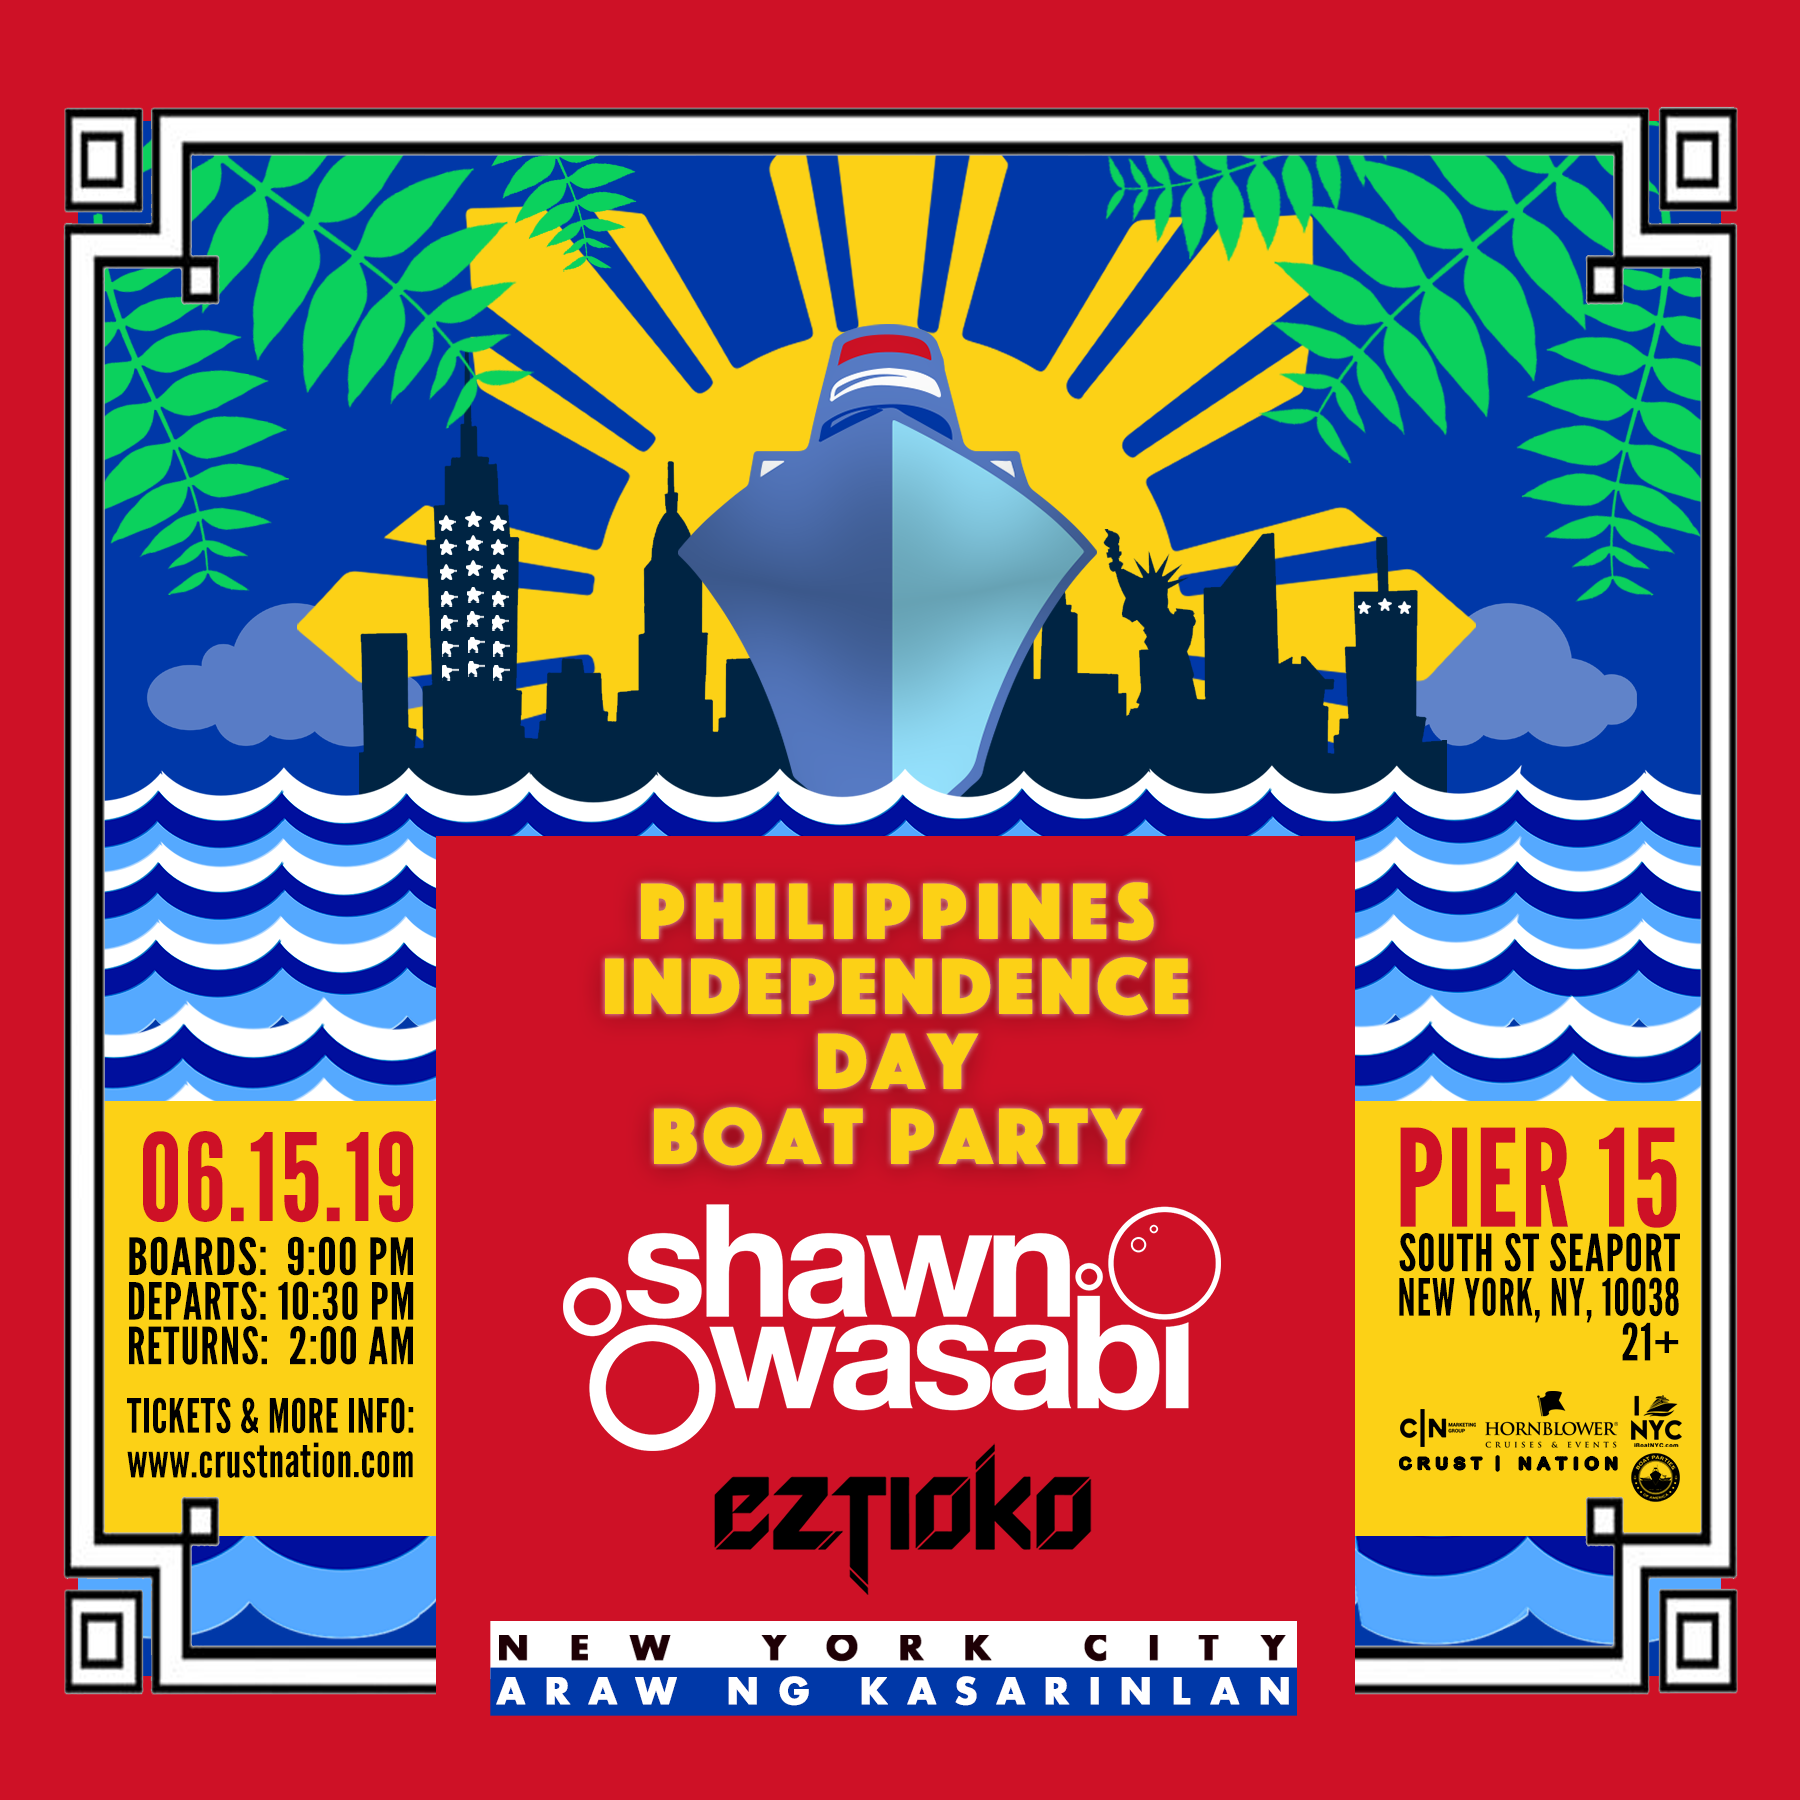 philippines-independence-day-boat-party-wasabi.png